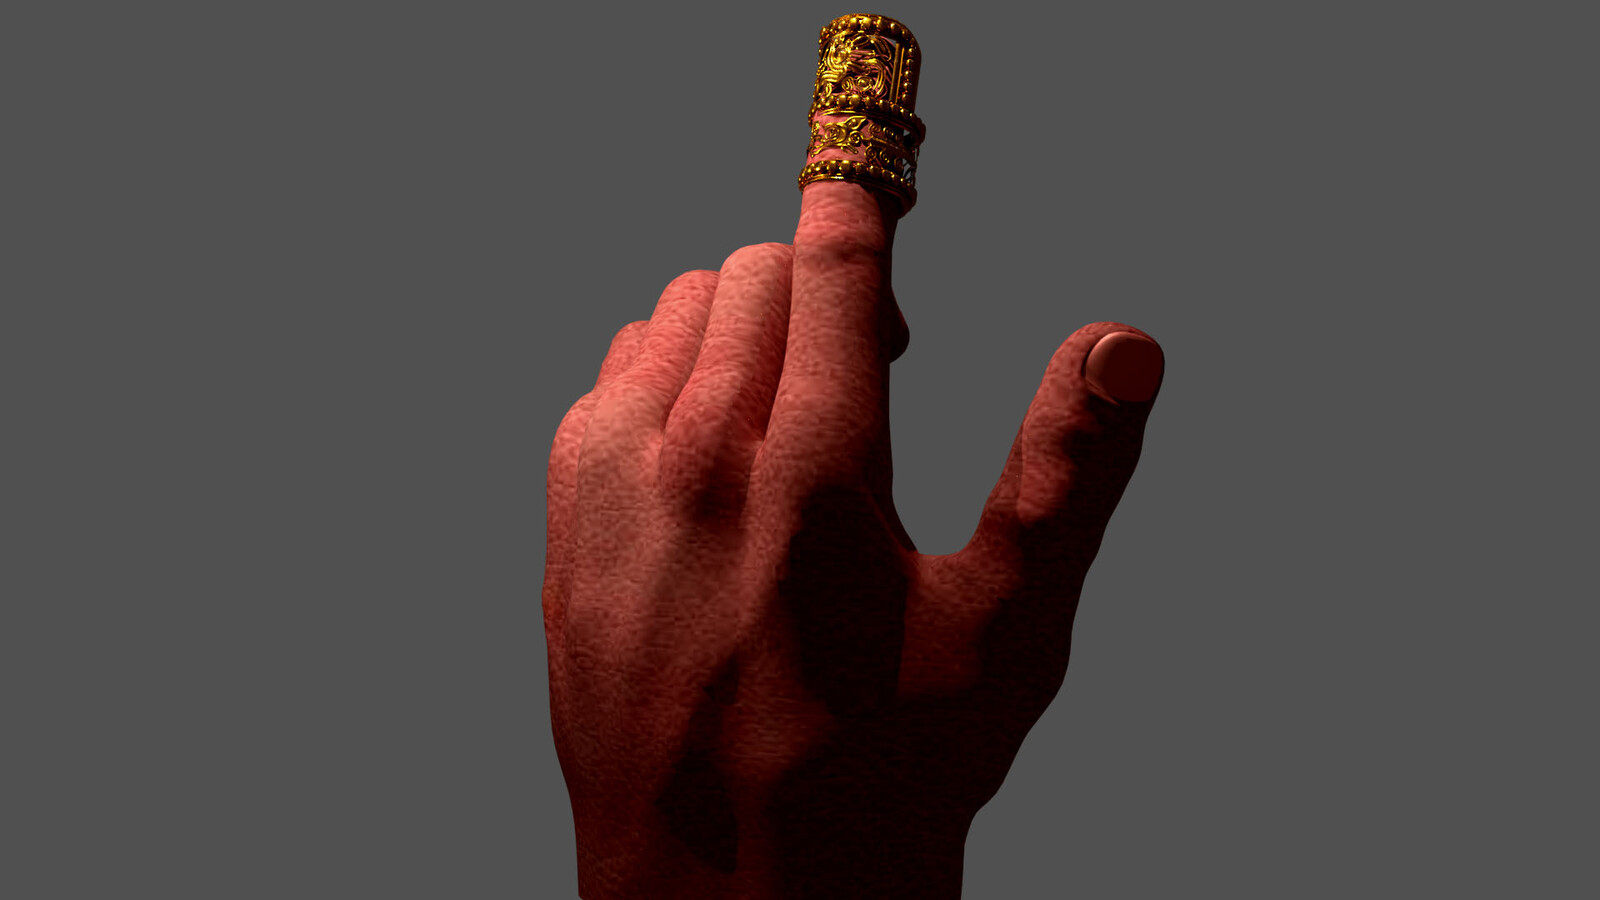 Hand with Gold Nail, Mixtec Civilization, 14th-15th